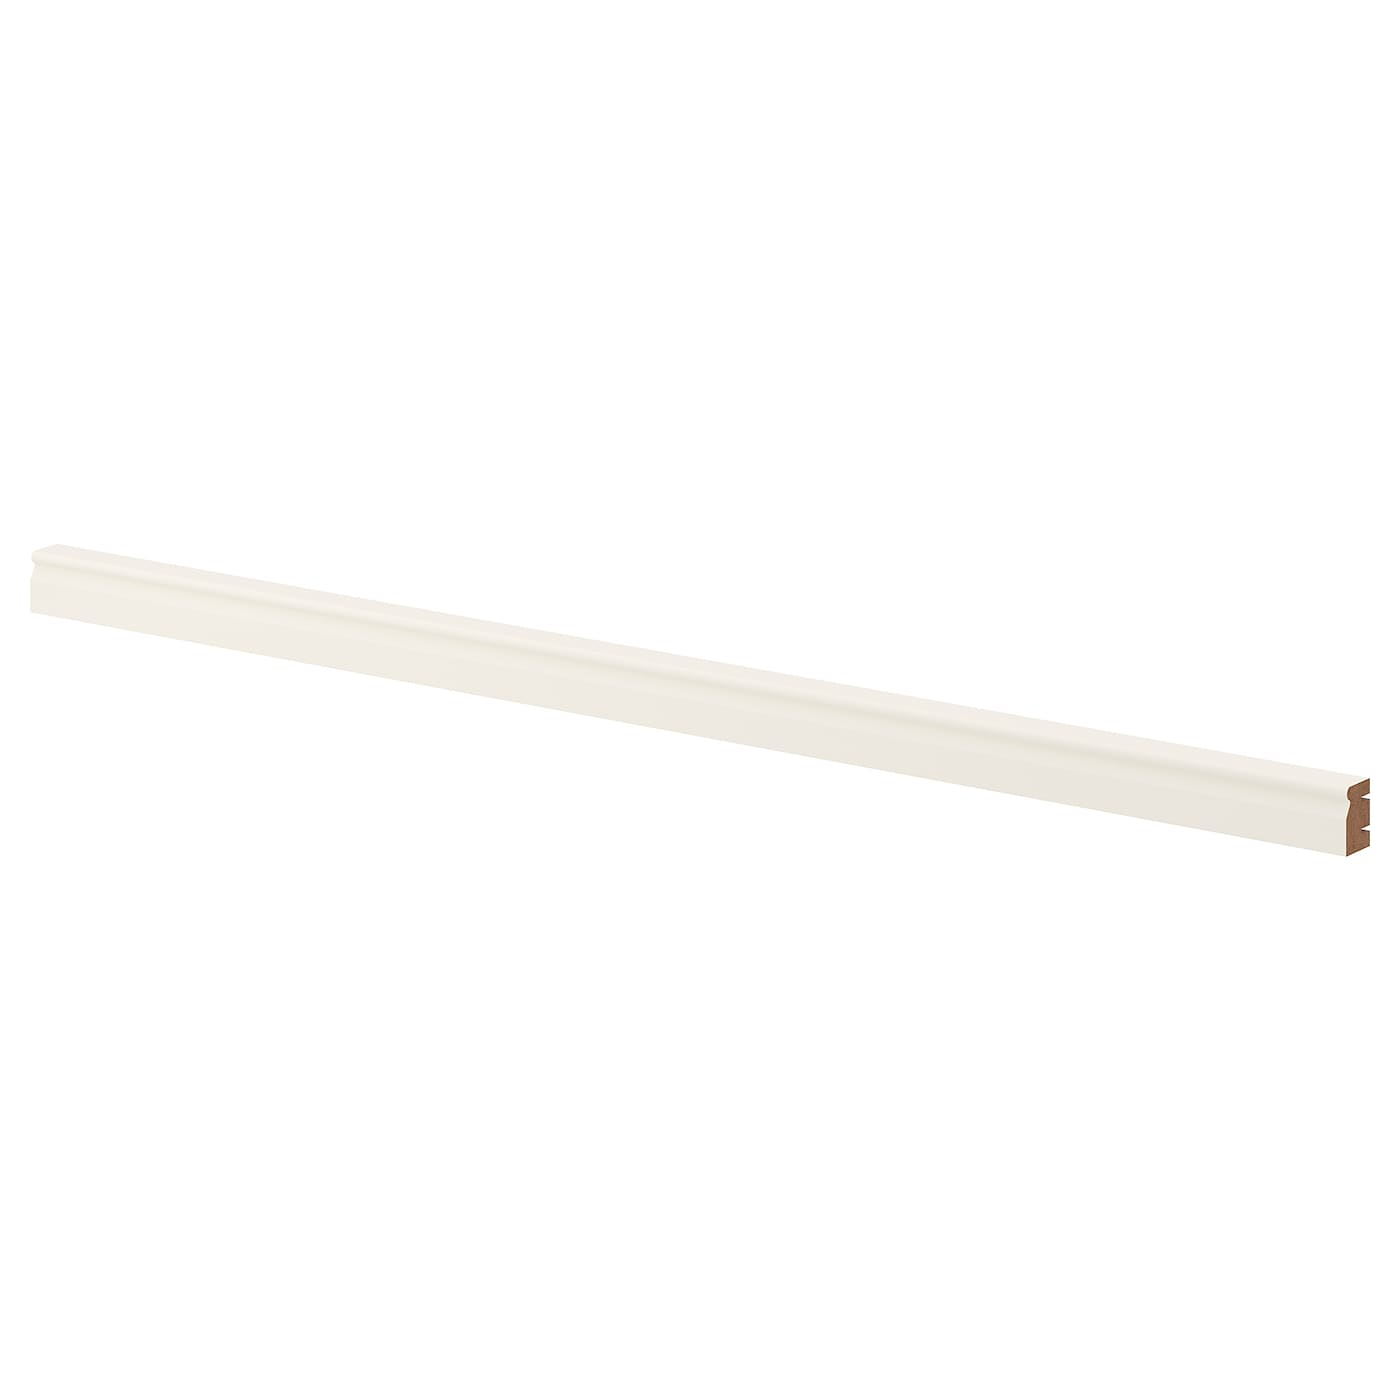 IKEA HITTARP contoured deco strip/moulding Can be cut to desired length.